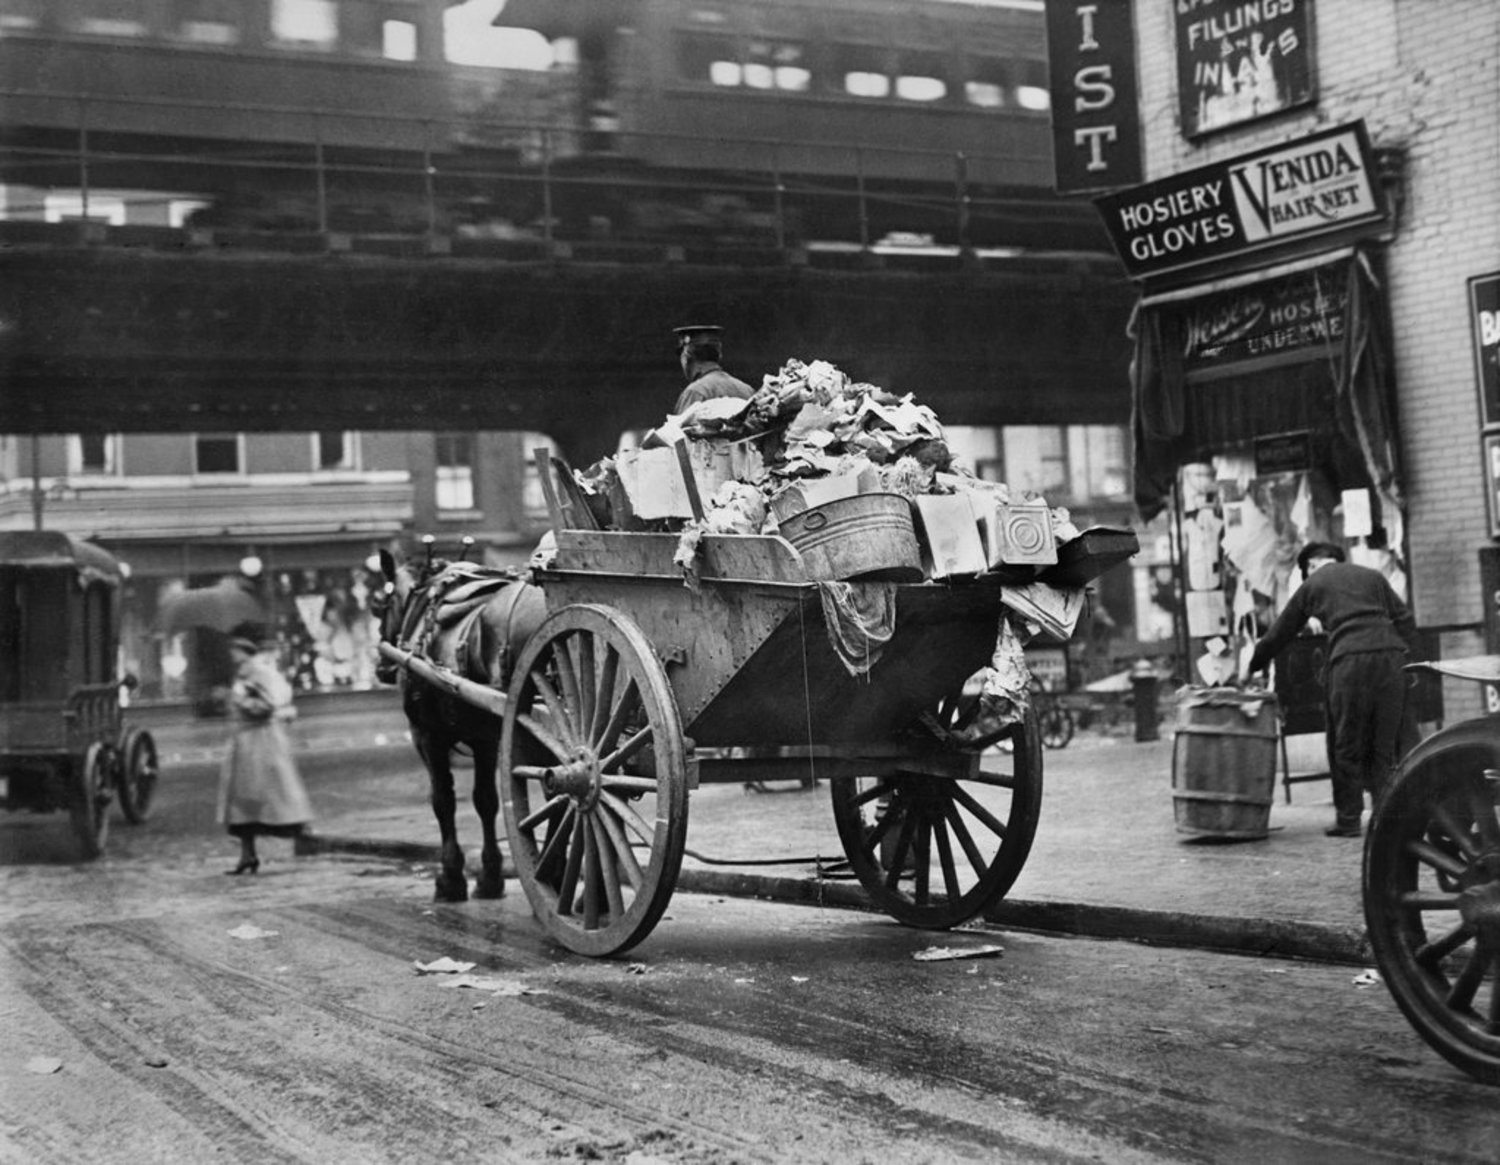 Vintage Photograph of New York City Street Cleaners Circa 1924